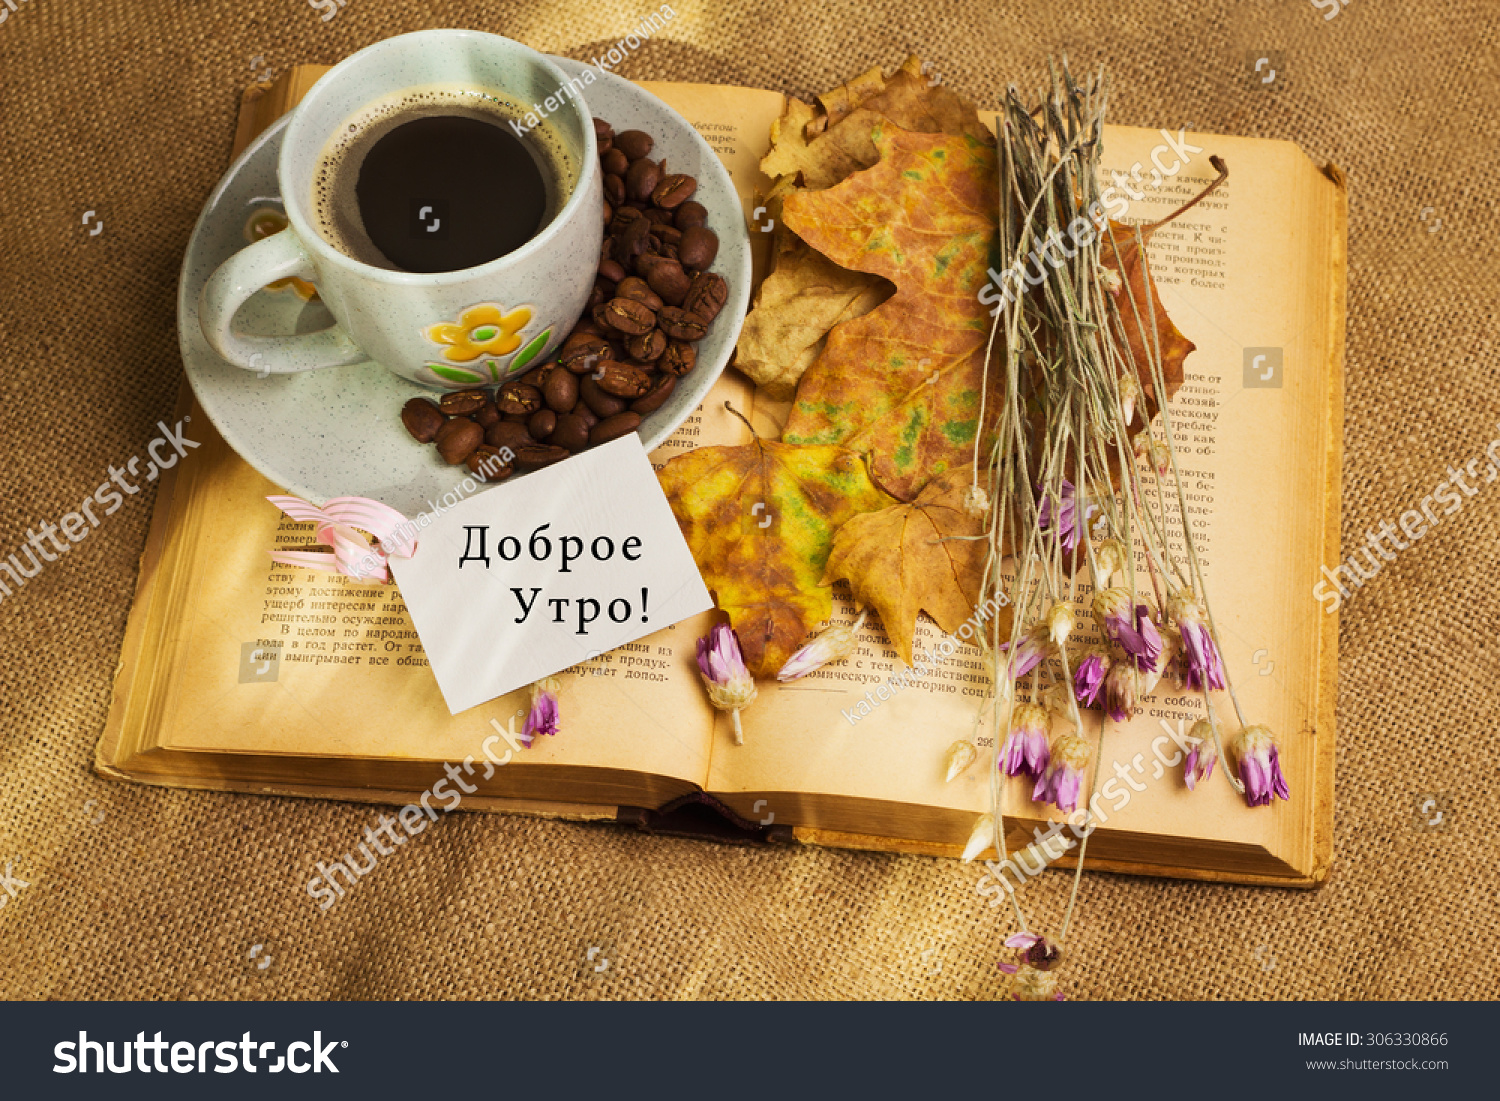 Good Morning Translated In Russian Language : Label words good morning russian cup stock photo